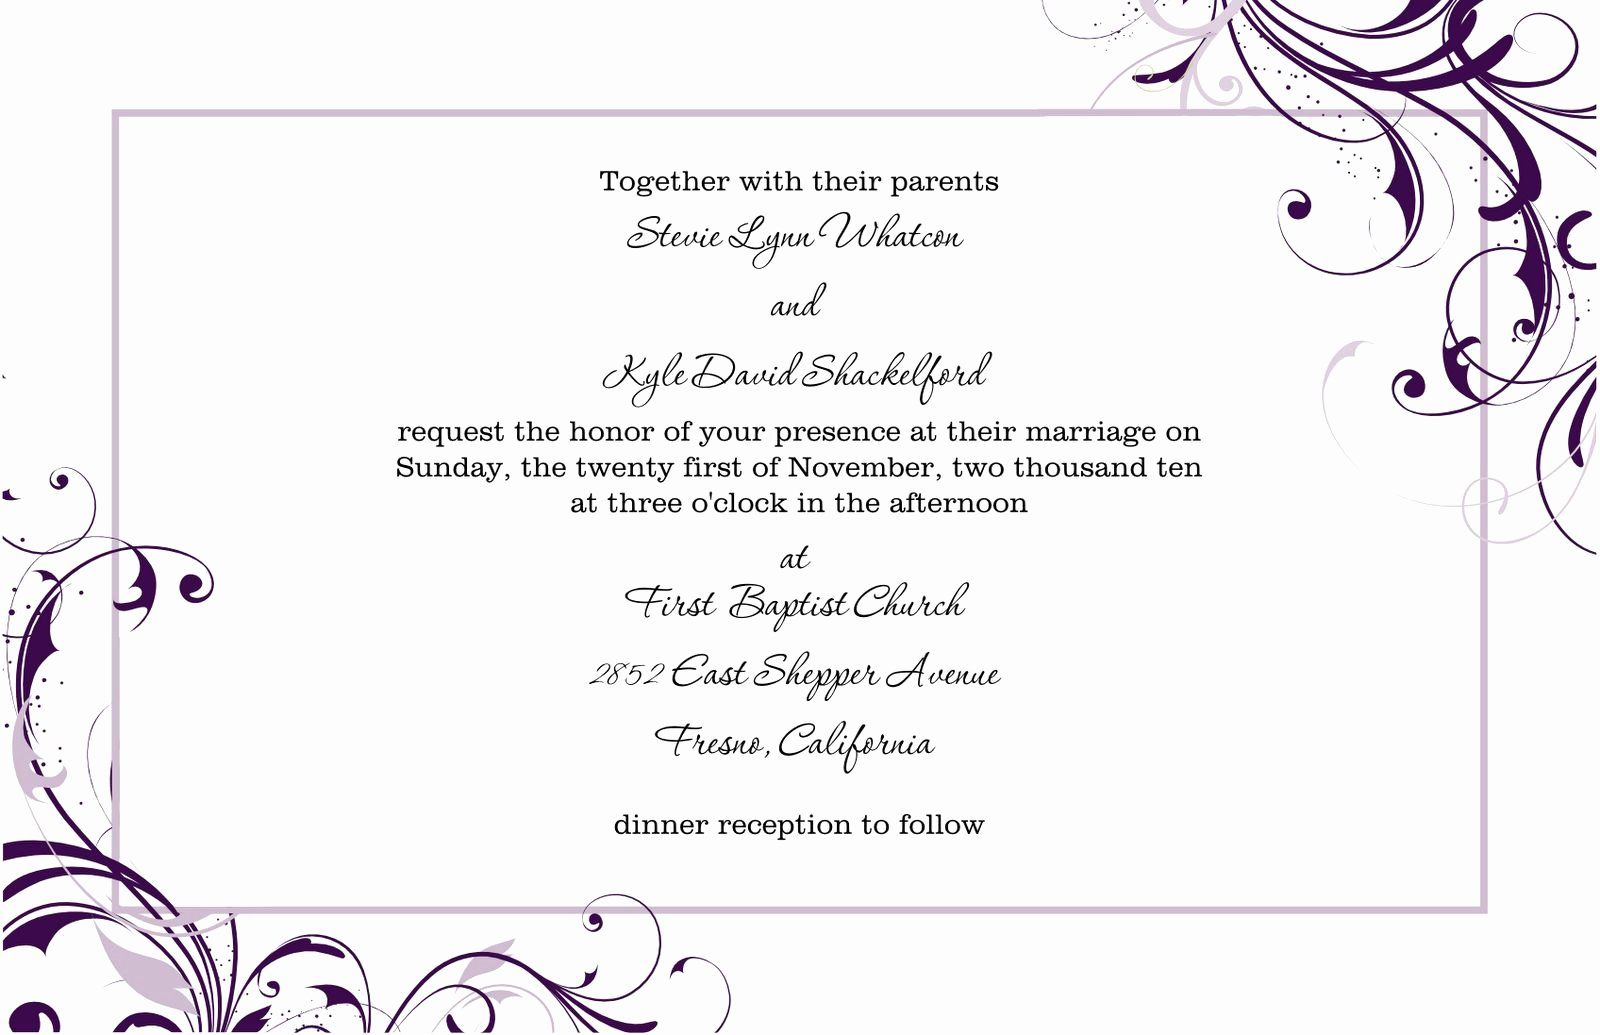 Party Invitations Template Word Best Of Engagement Party Invitati Blank Wedding Invitation Templates Free Wedding Invitation Templates Free Wedding Invitations